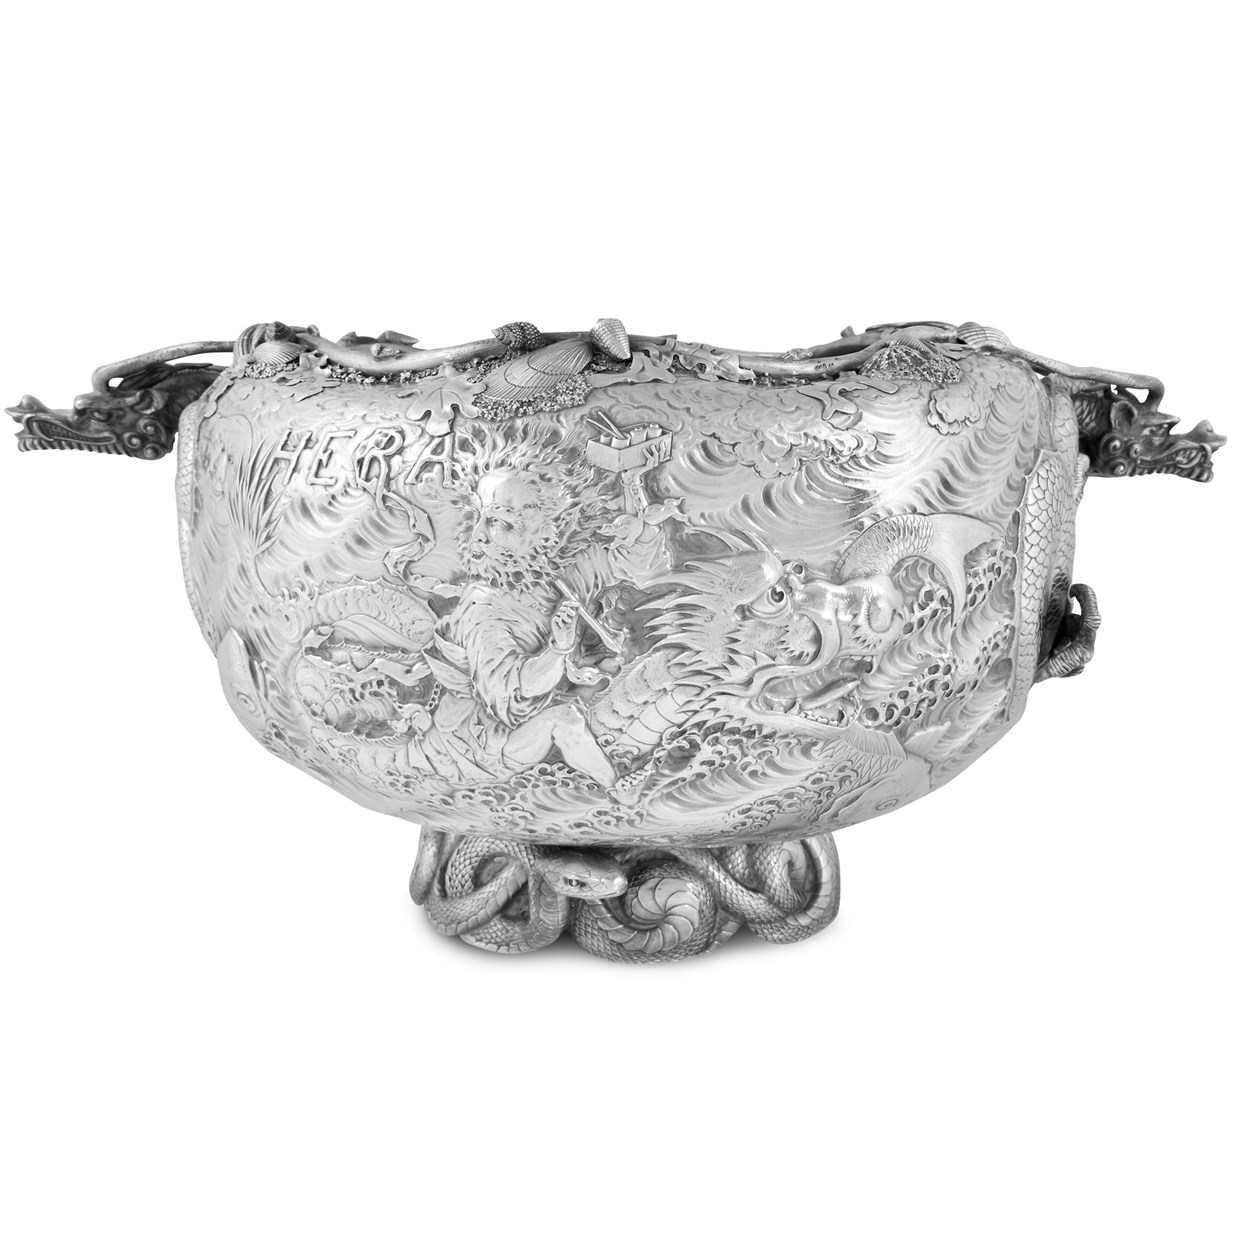 Lot 10 - Impressive silver presentation punch bowl in the Japanese manner